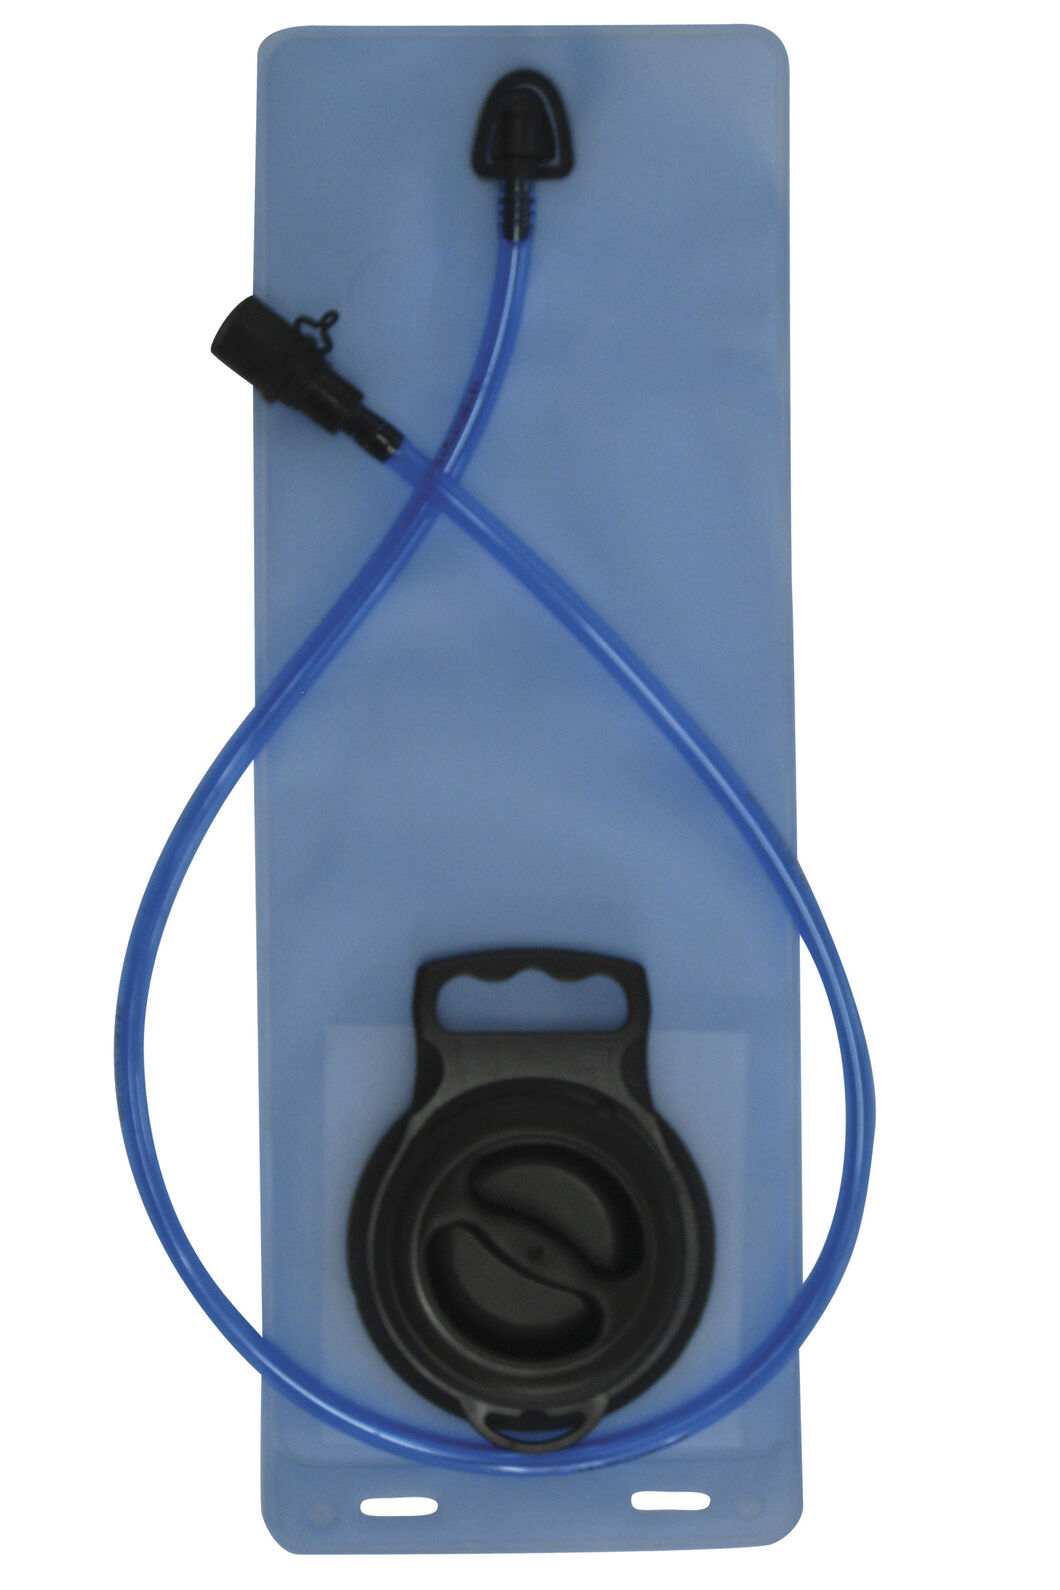 Macpac 3L Hydration Reservoir, None, hi-res